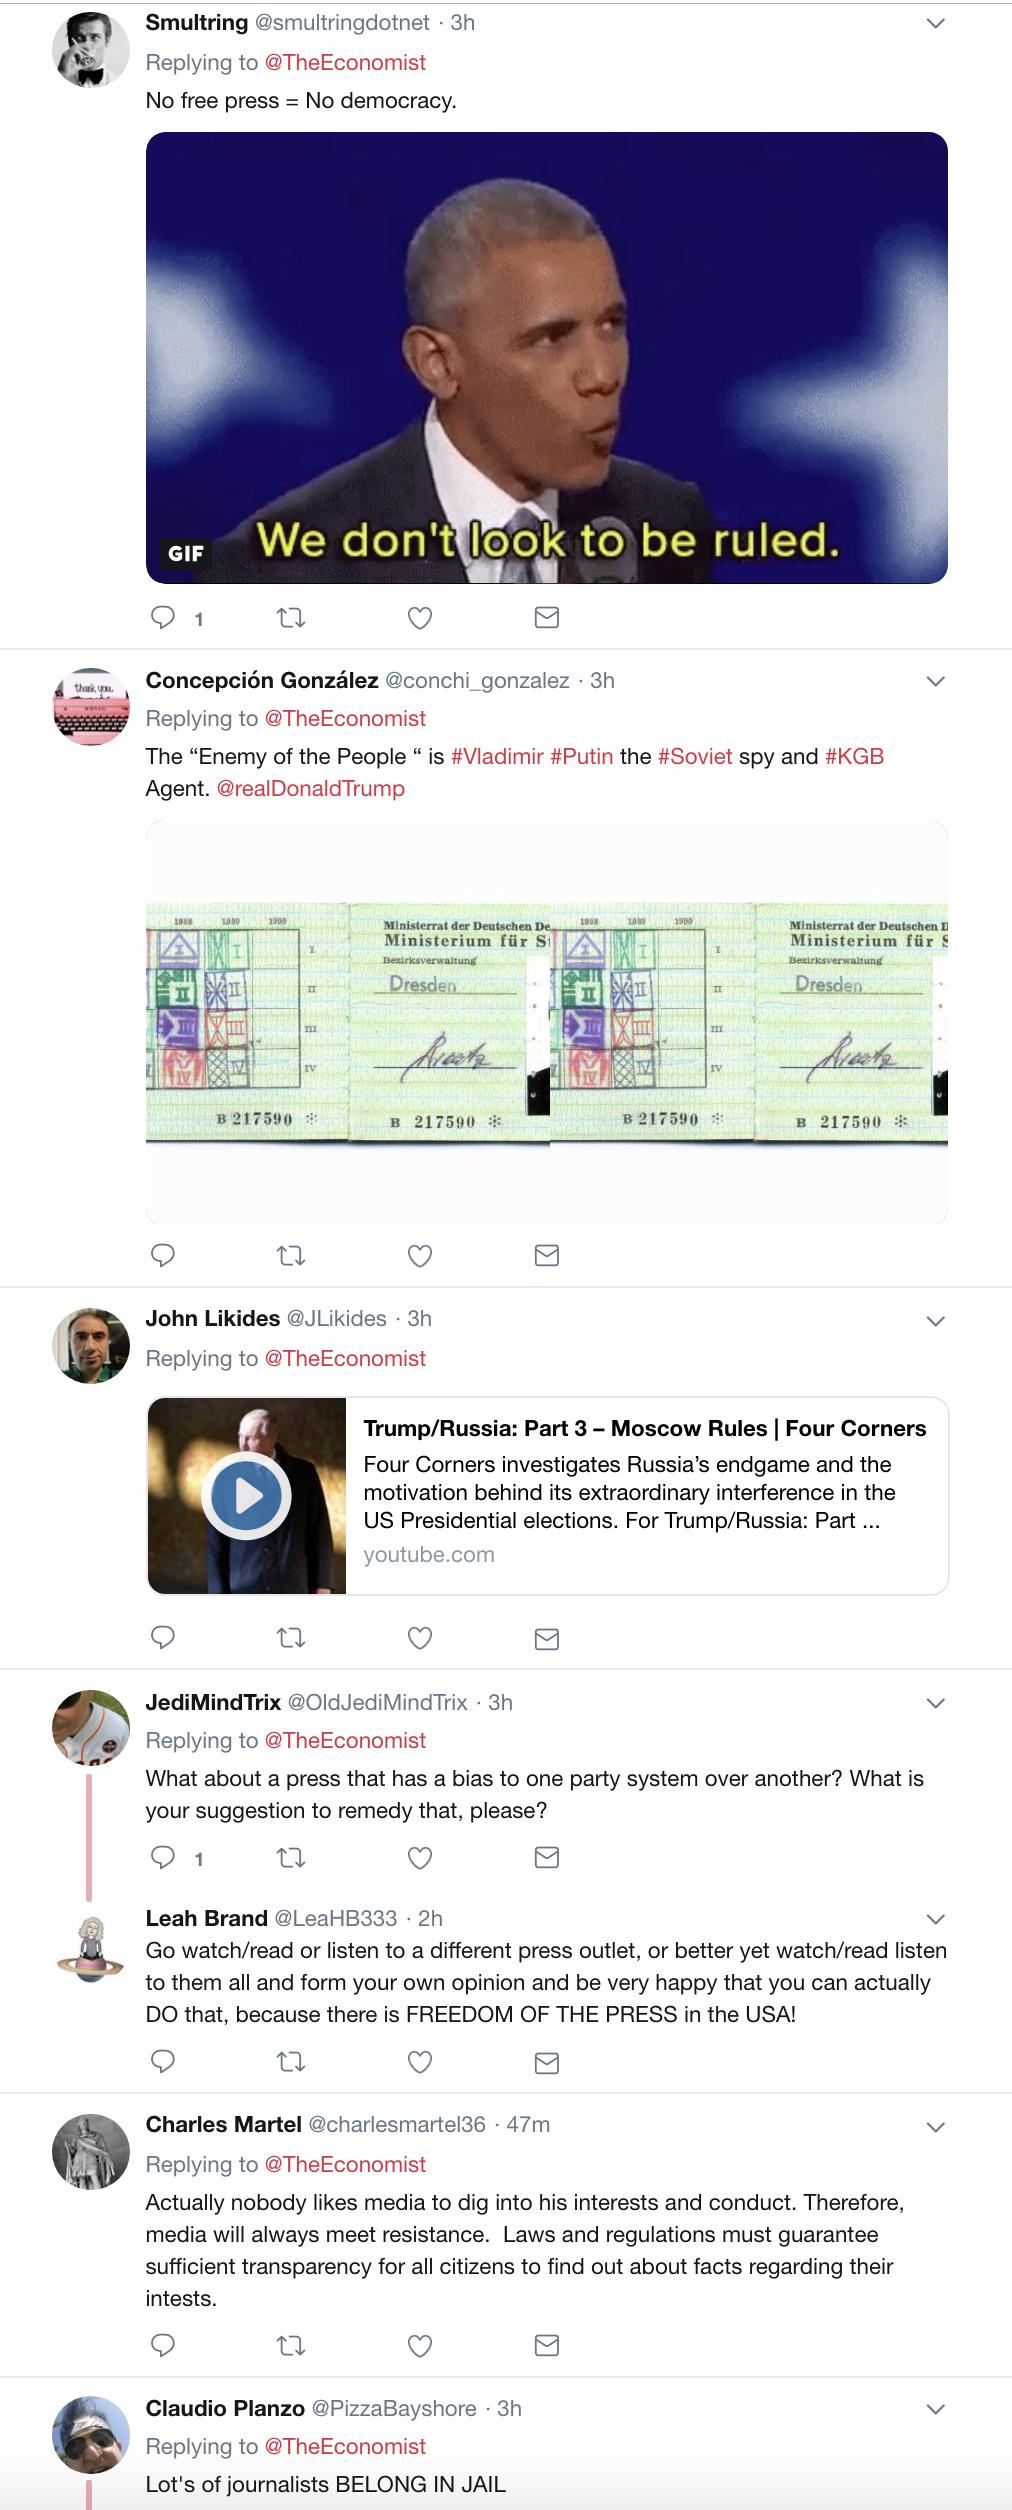 Screen-Shot-2018-12-16-at-4.56.12-PM Sophisticated Russian Attack On U.S. Politics Announced By Sunday 'WaPost' Corruption Crime Donald Trump Military Mueller Politics Robert Mueller Russia Social Media Top Stories